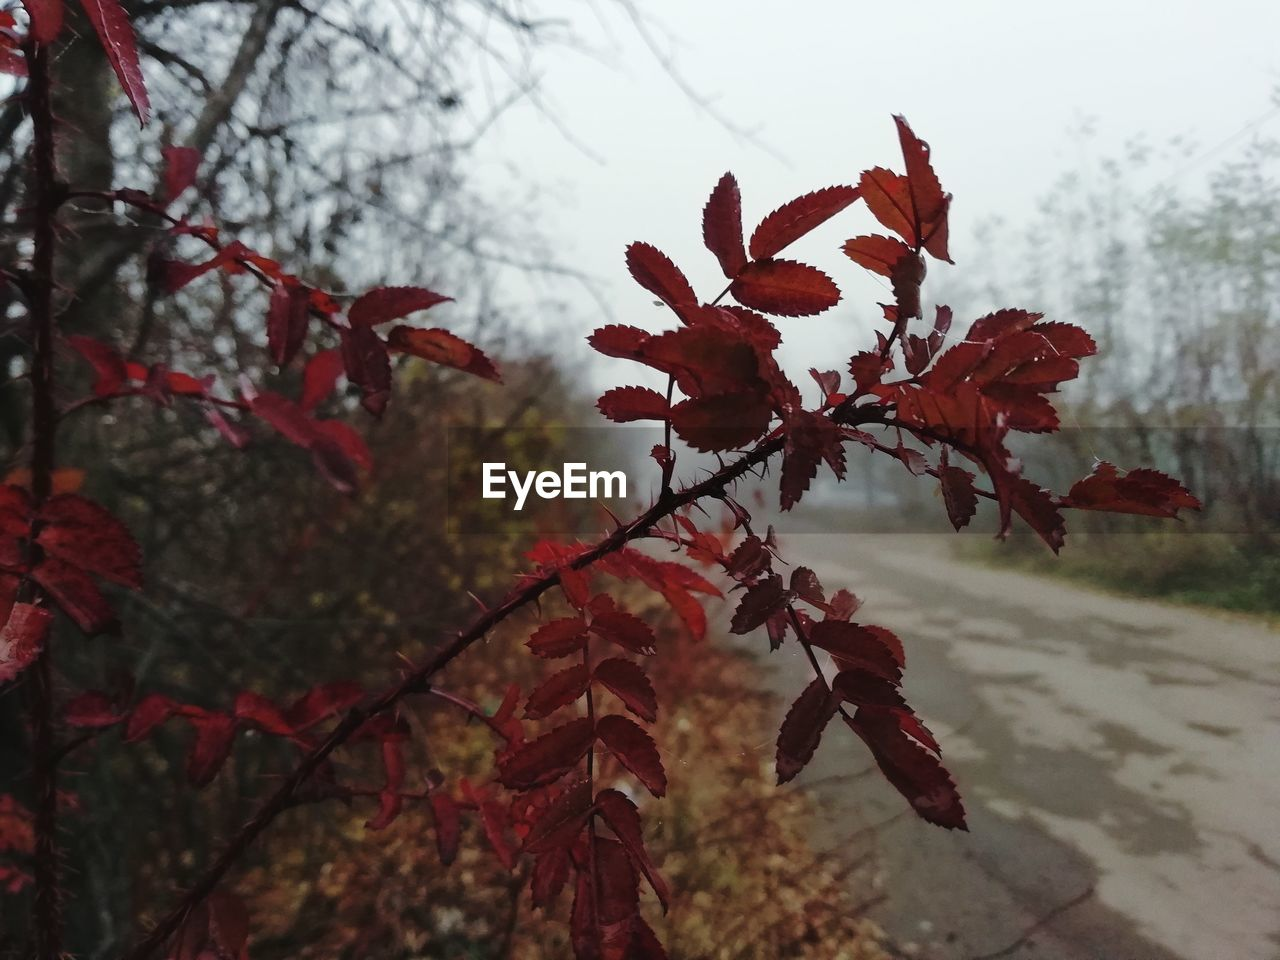 plant, growth, beauty in nature, focus on foreground, close-up, tree, nature, no people, change, plant part, leaf, autumn, day, tranquility, branch, red, outdoors, selective focus, vulnerability, fragility, leaves, maple leaf